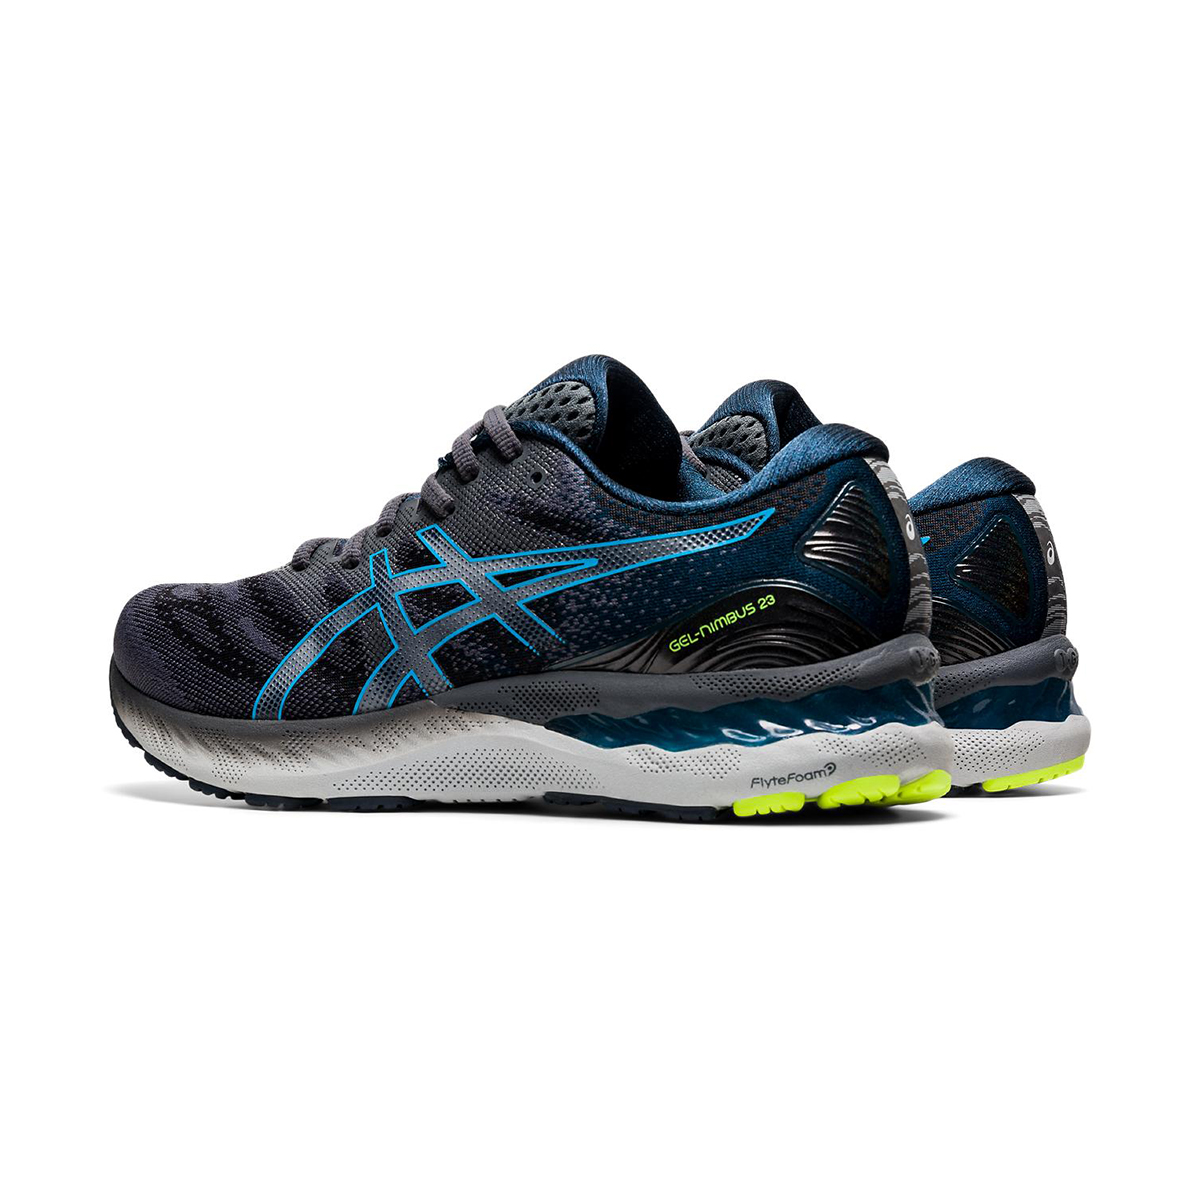 Men's Asics GEL-Nimbus 23 Running Shoe - Color: Carrier Grey/Digital Aqua - Size: 8.5 - Width: Regular, Carrier Grey/Digital Aqua, large, image 4